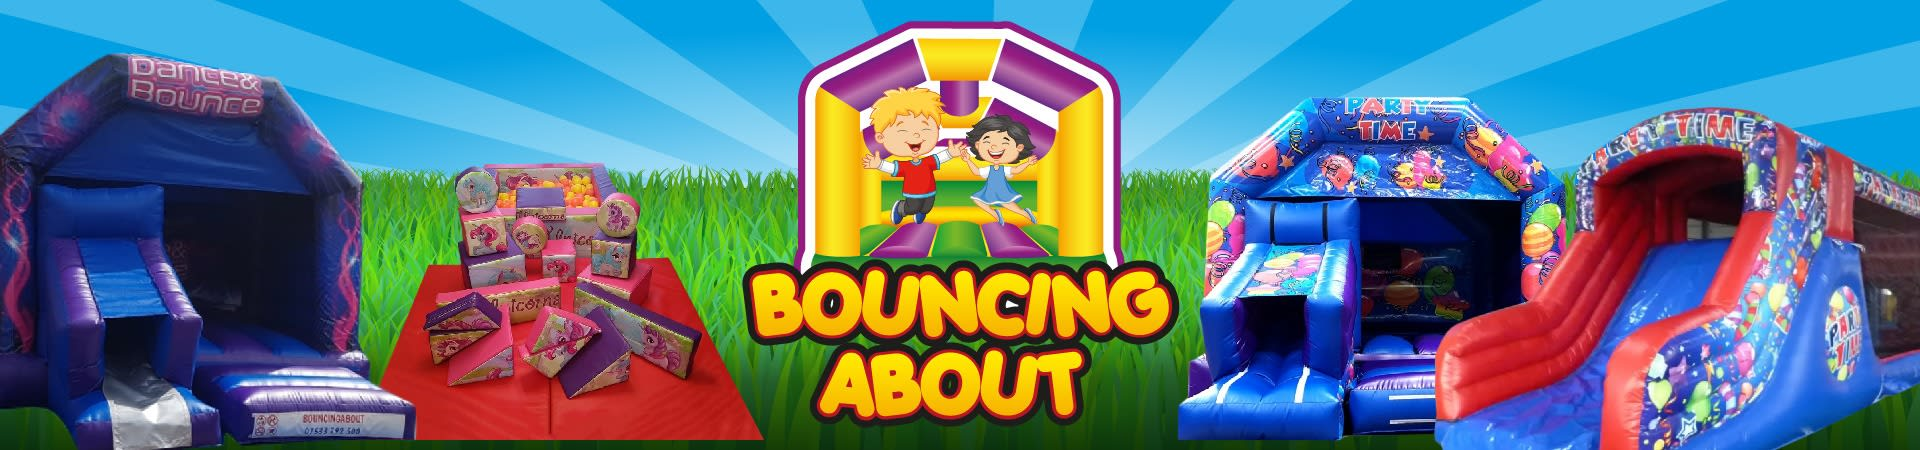 Bouncing About